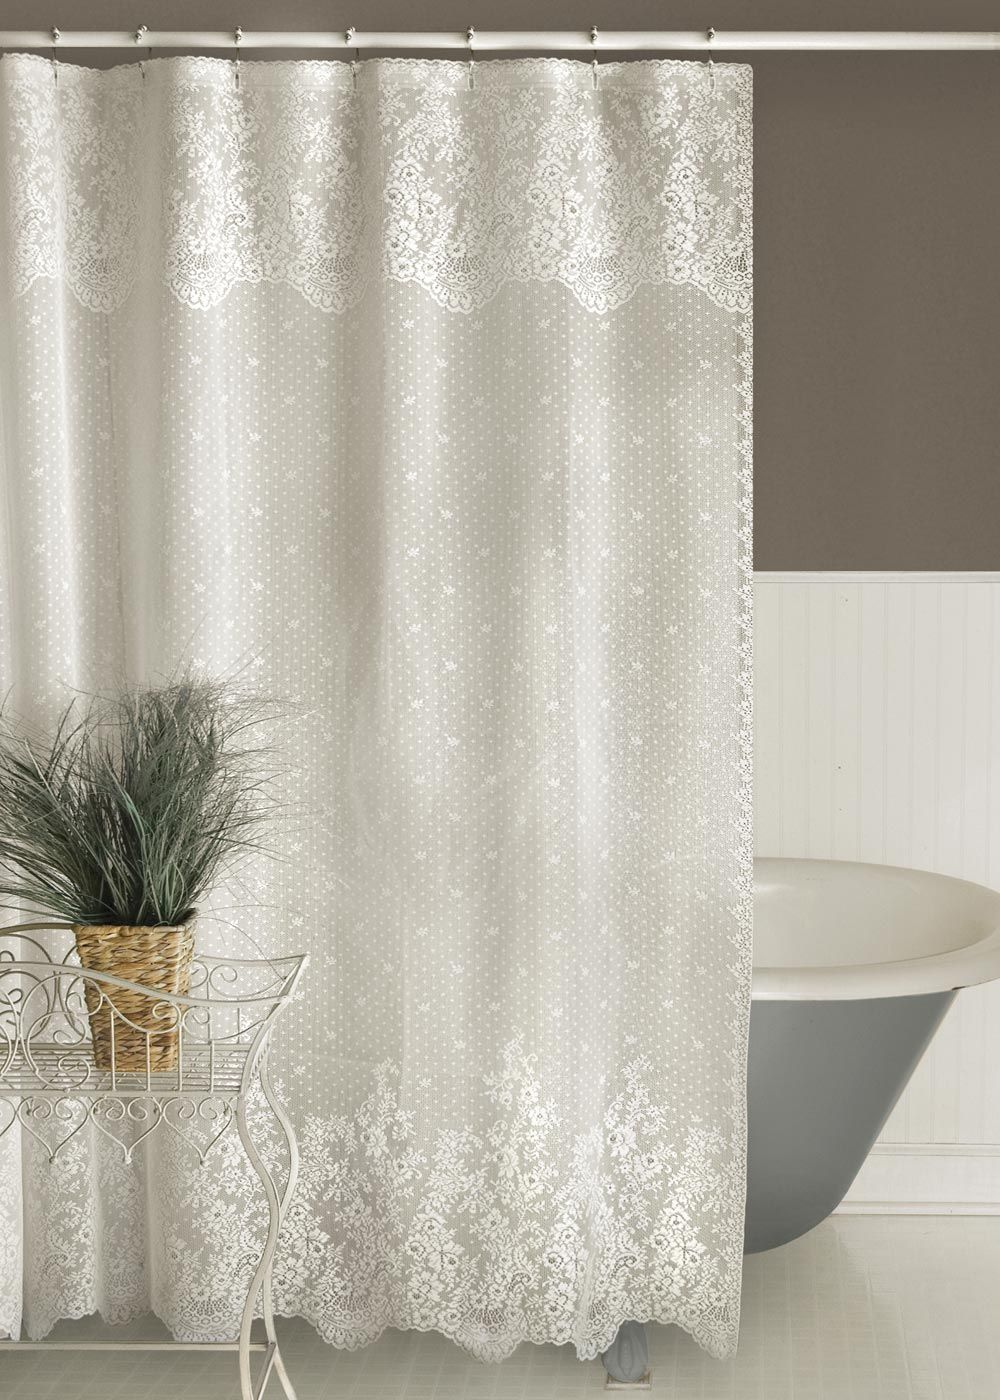 Floret Shower Curtain  What a beautiful shower curtain